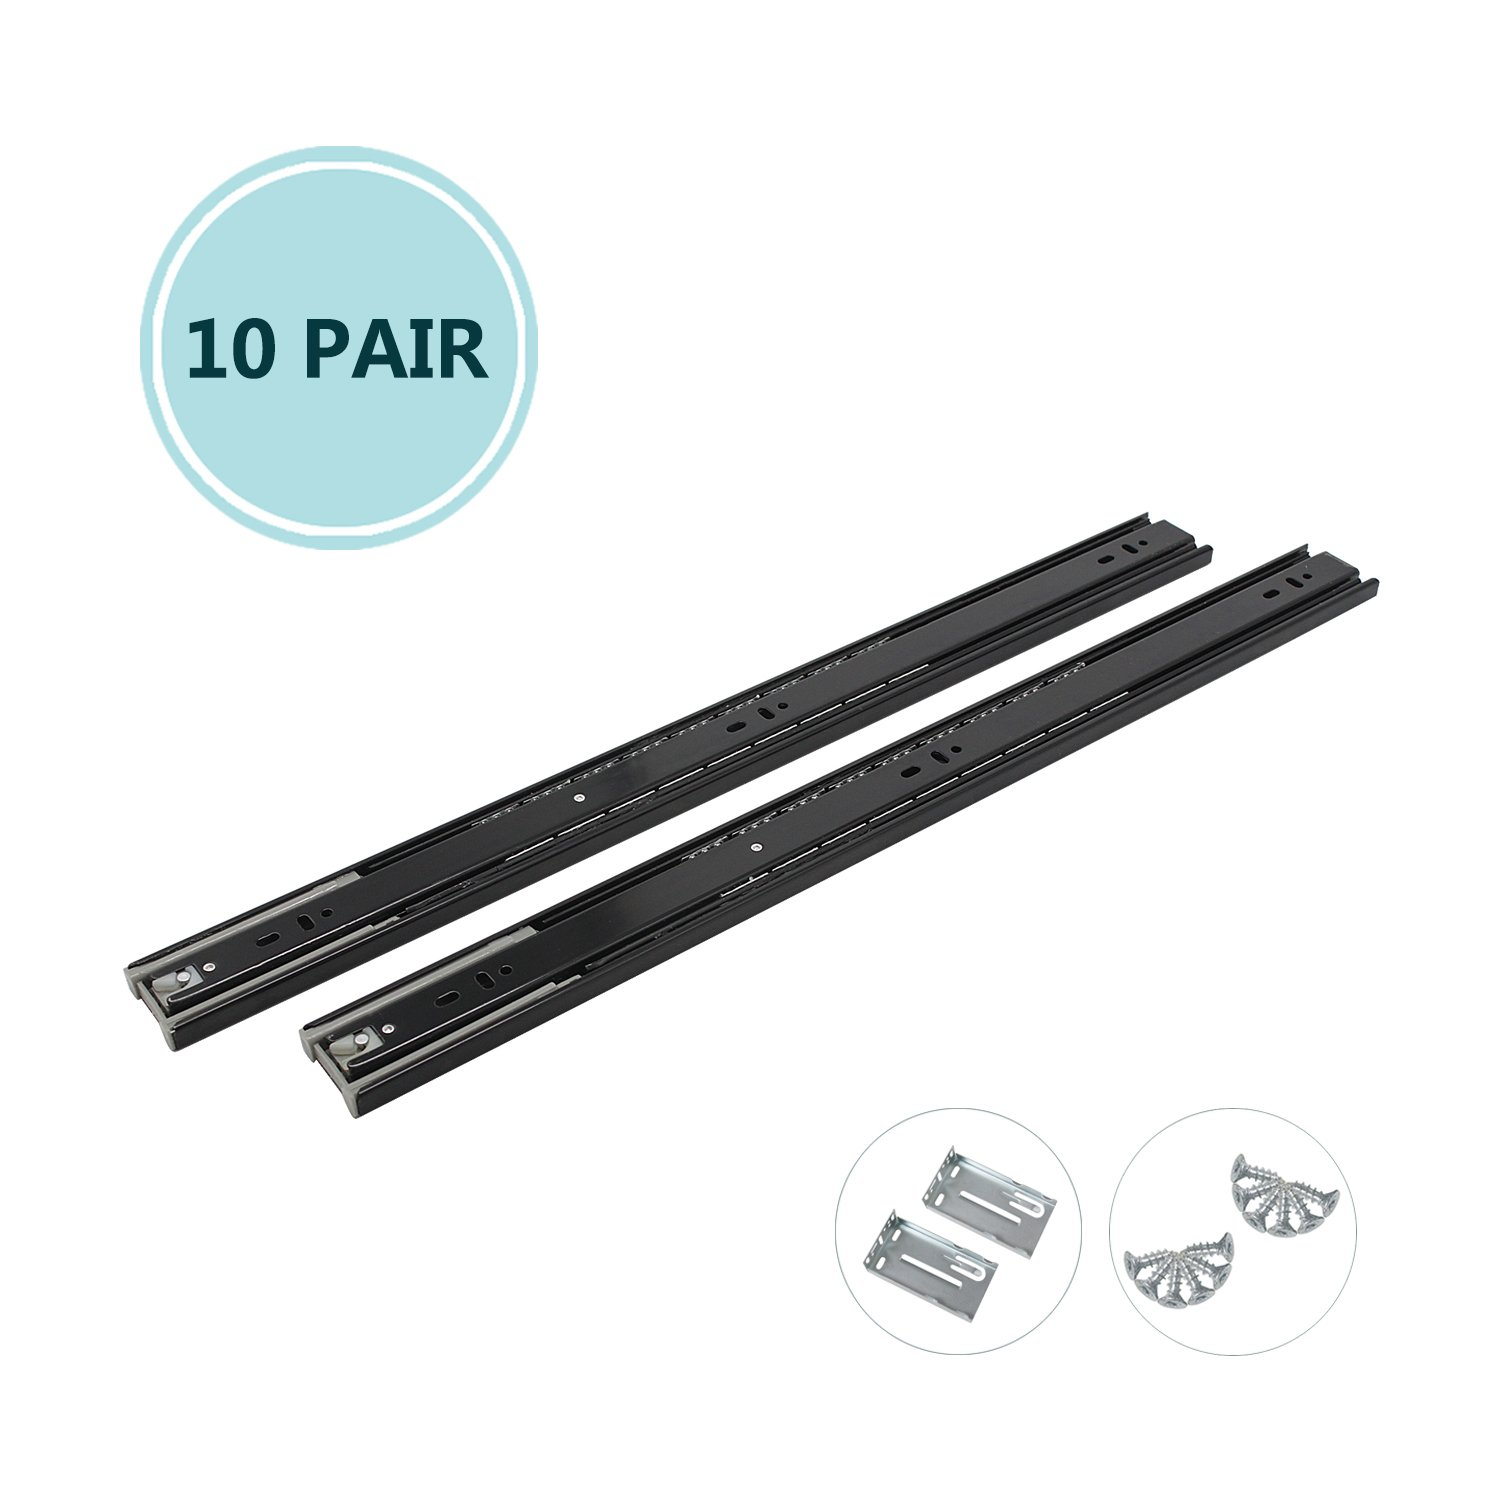 24 Inch Full Extension Ball Bearing Soft Close Slides 80 LB Capacity Kitchen Cabinet Drawer Slides Black Finish, Rear Mount Bracket and Screws are Included (24 Inch 10 Pair)